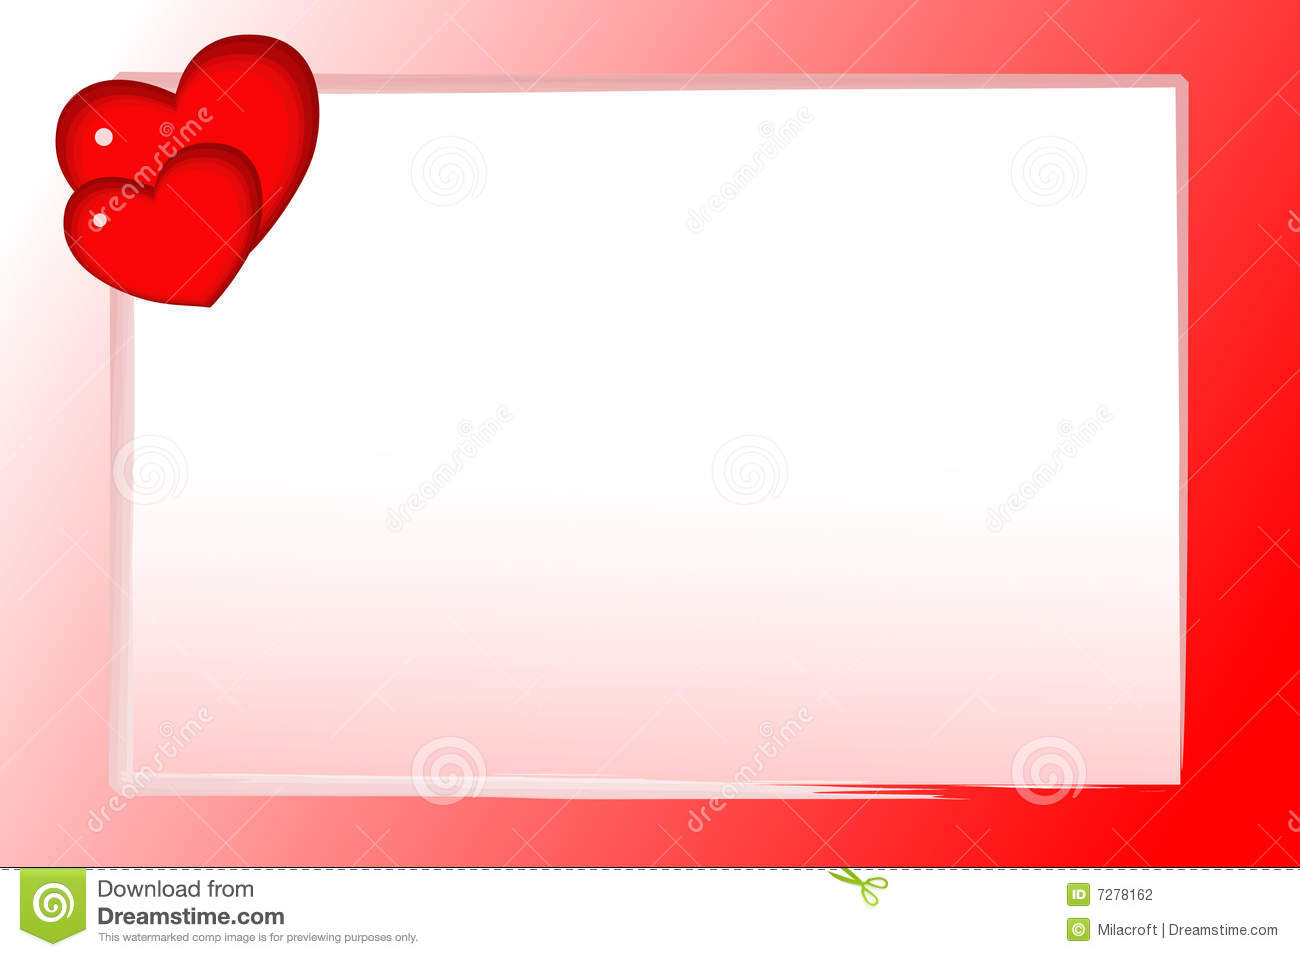 Valentine card stock photography image 7278162 for What to put on a valentines card